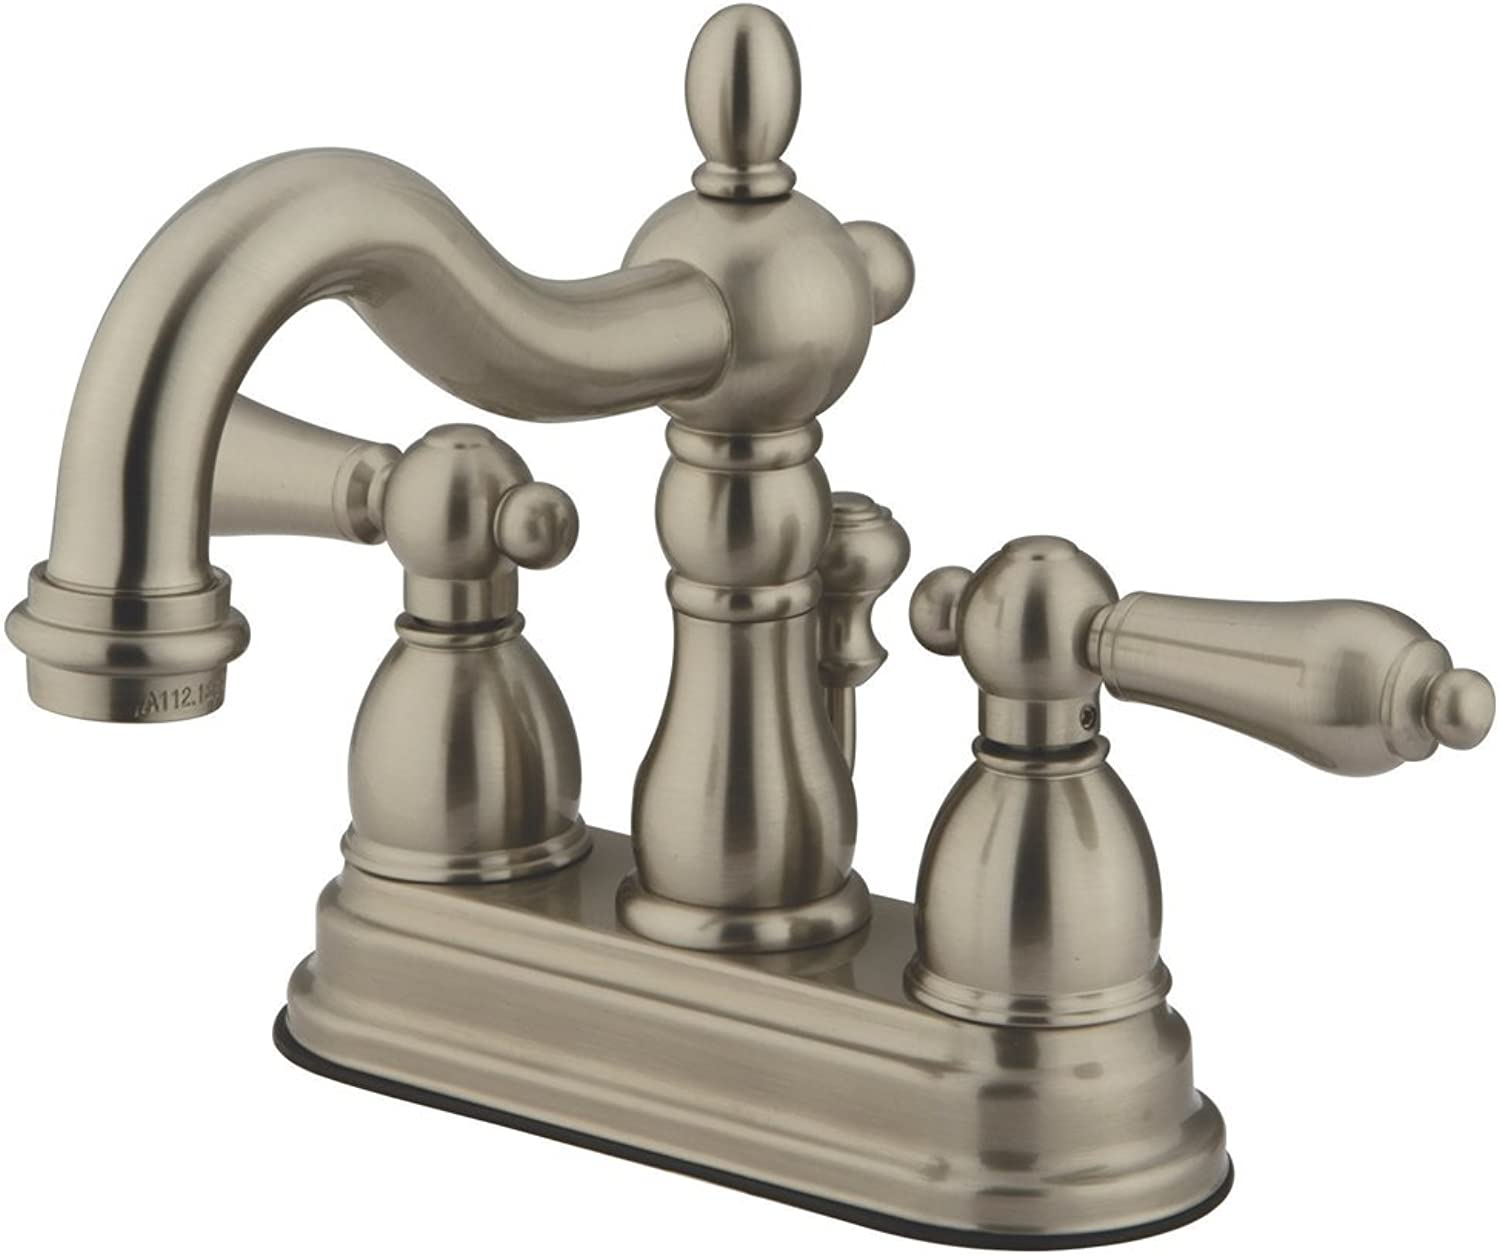 Kingston Brass KB1603AL Heritage 4-Inch Centerset Lavatory Faucet with Metal Lever Handle, Vintage Brass by Kingston Brass